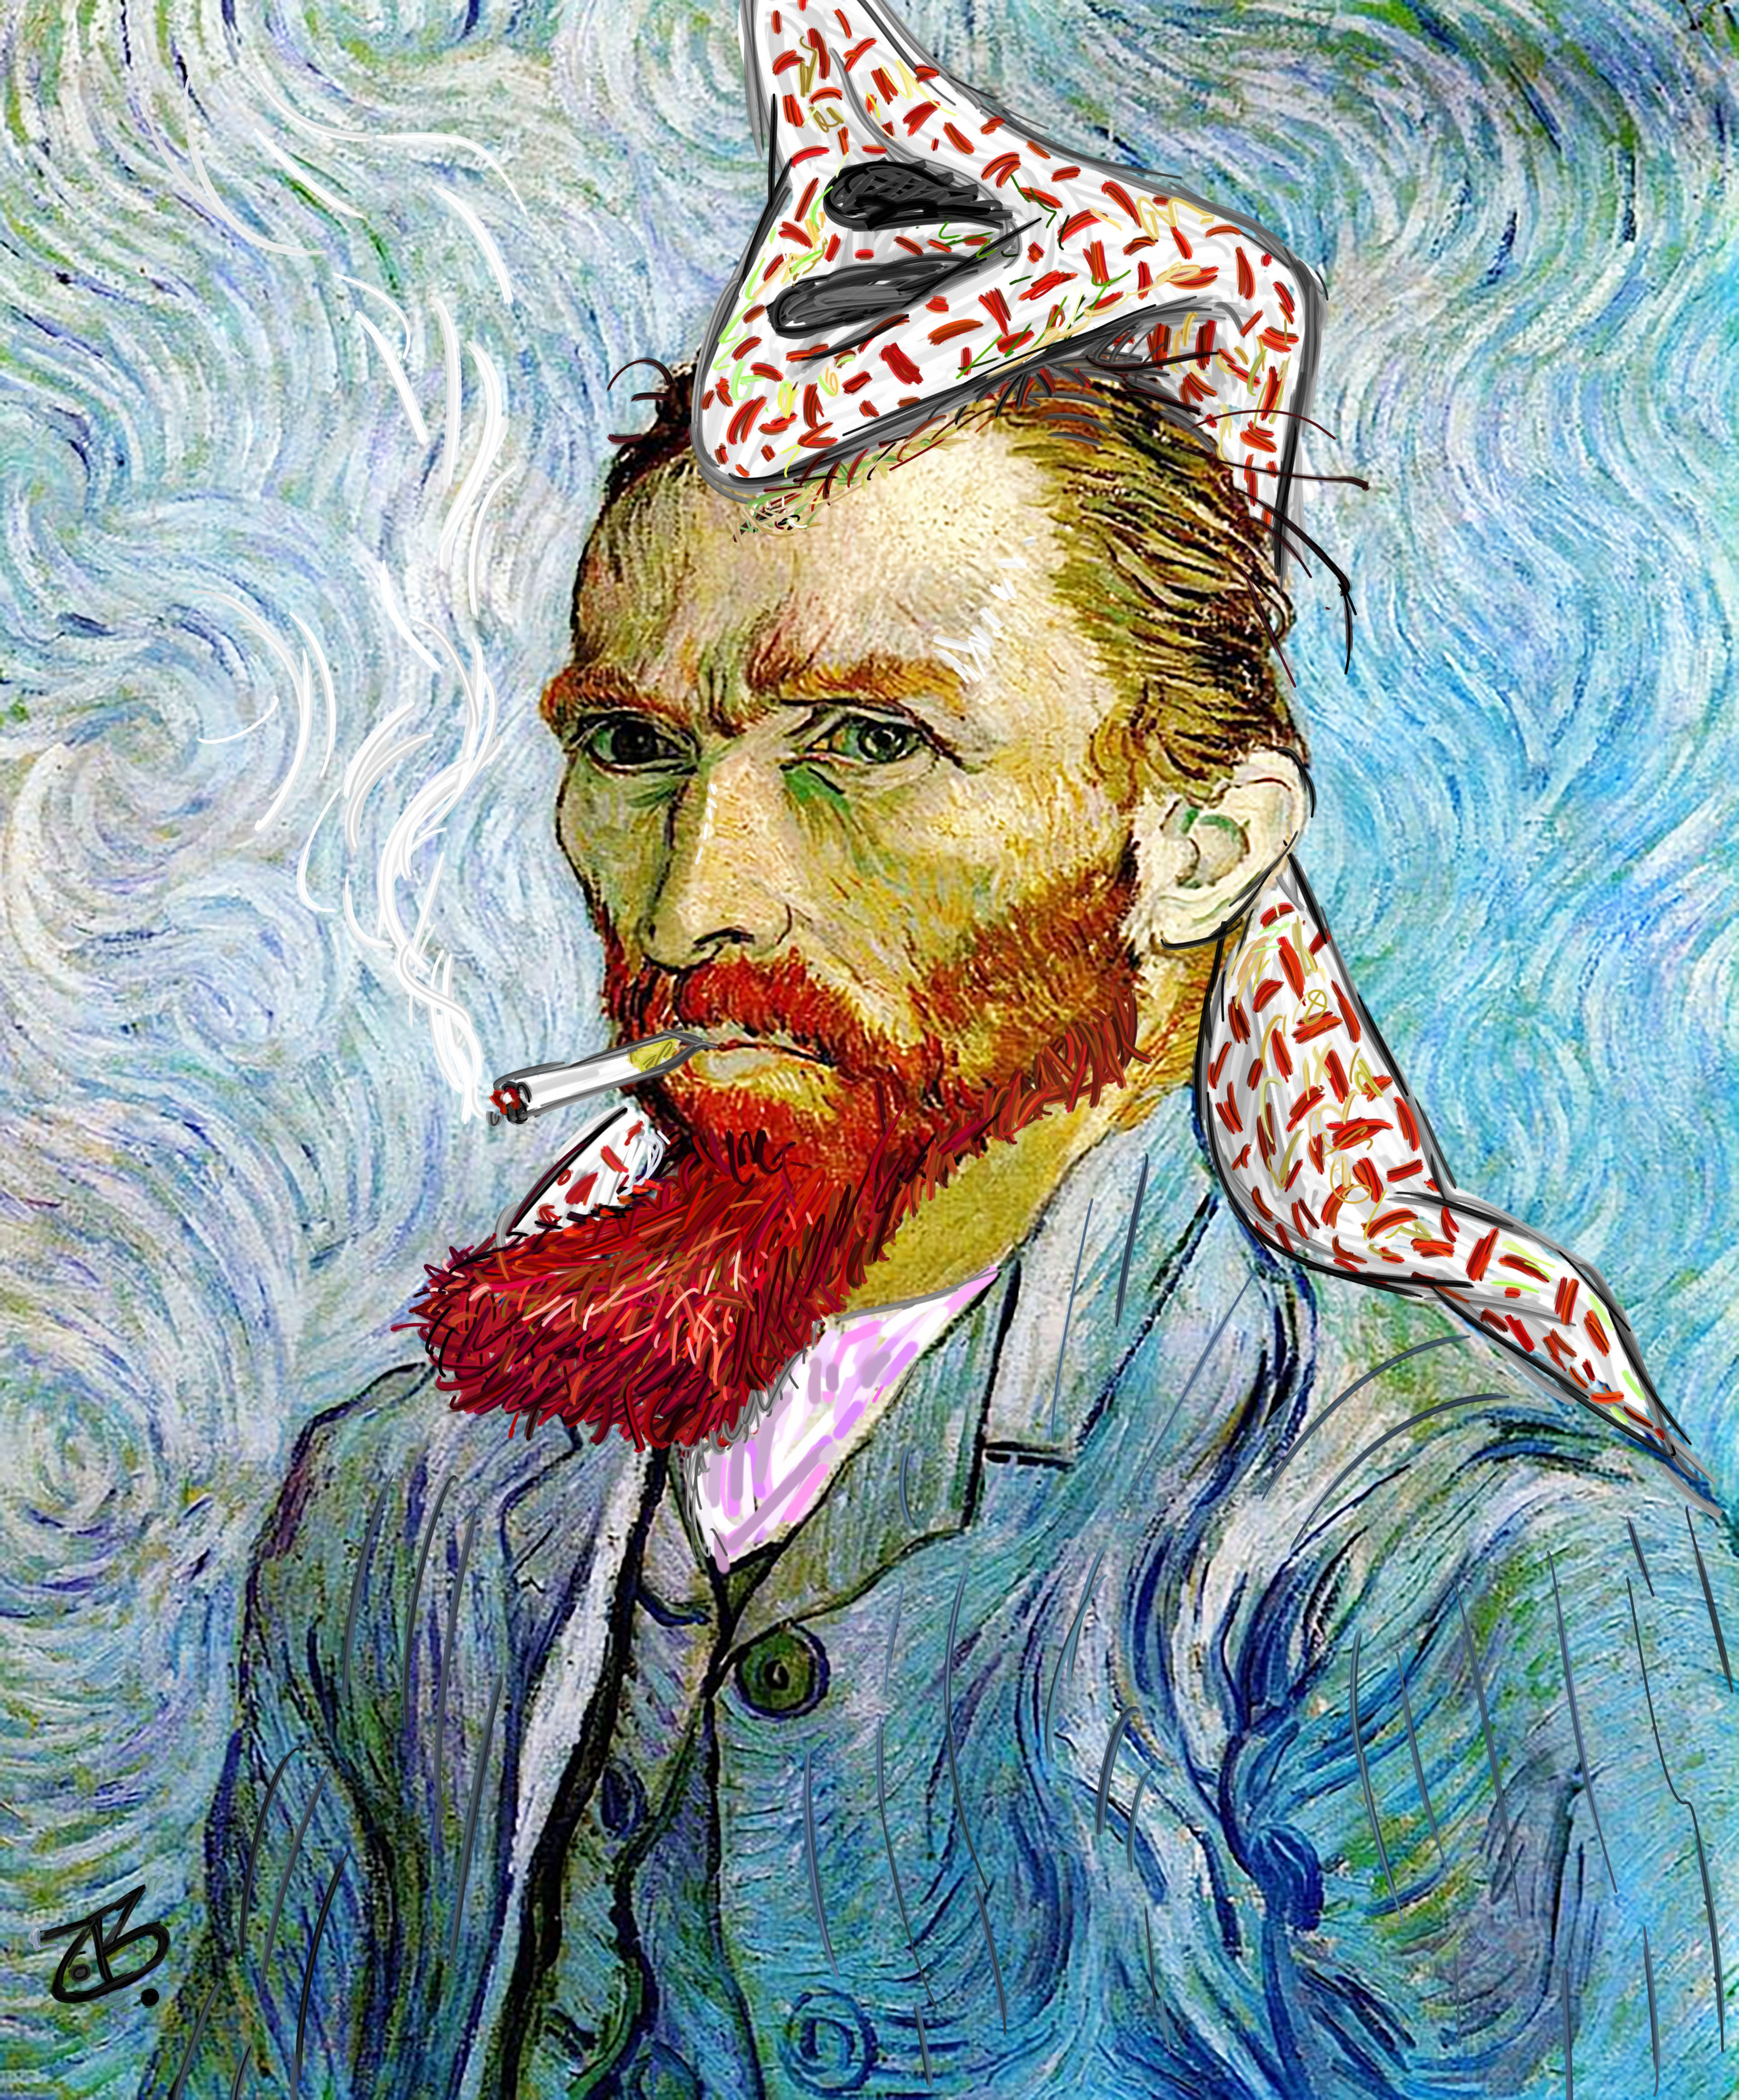 van gogh abu mahjoob art face portrait jordan holland culture 15-03-26